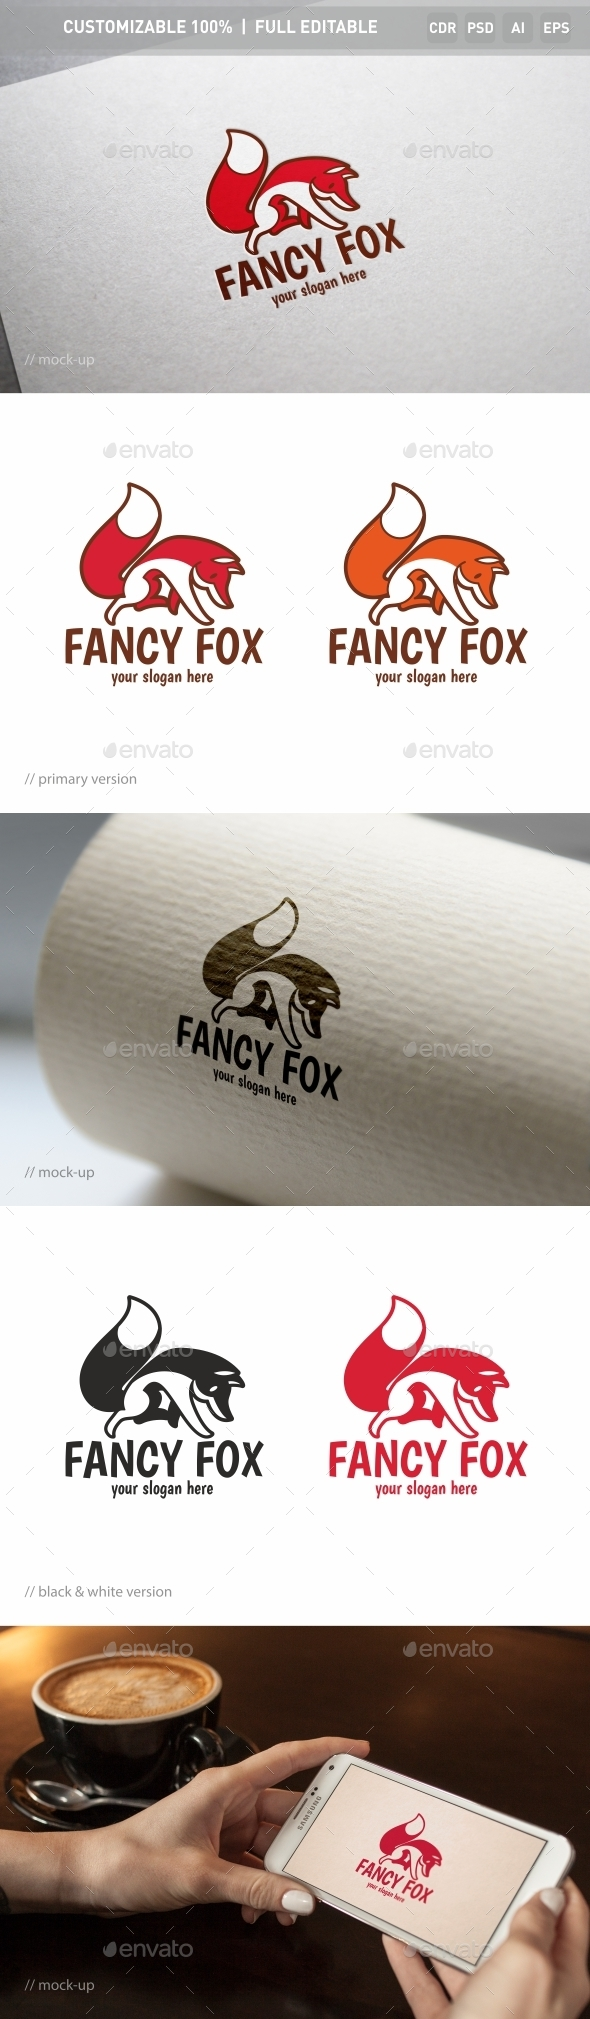 Fancy Fox Logo Template - Objects Logo Templates